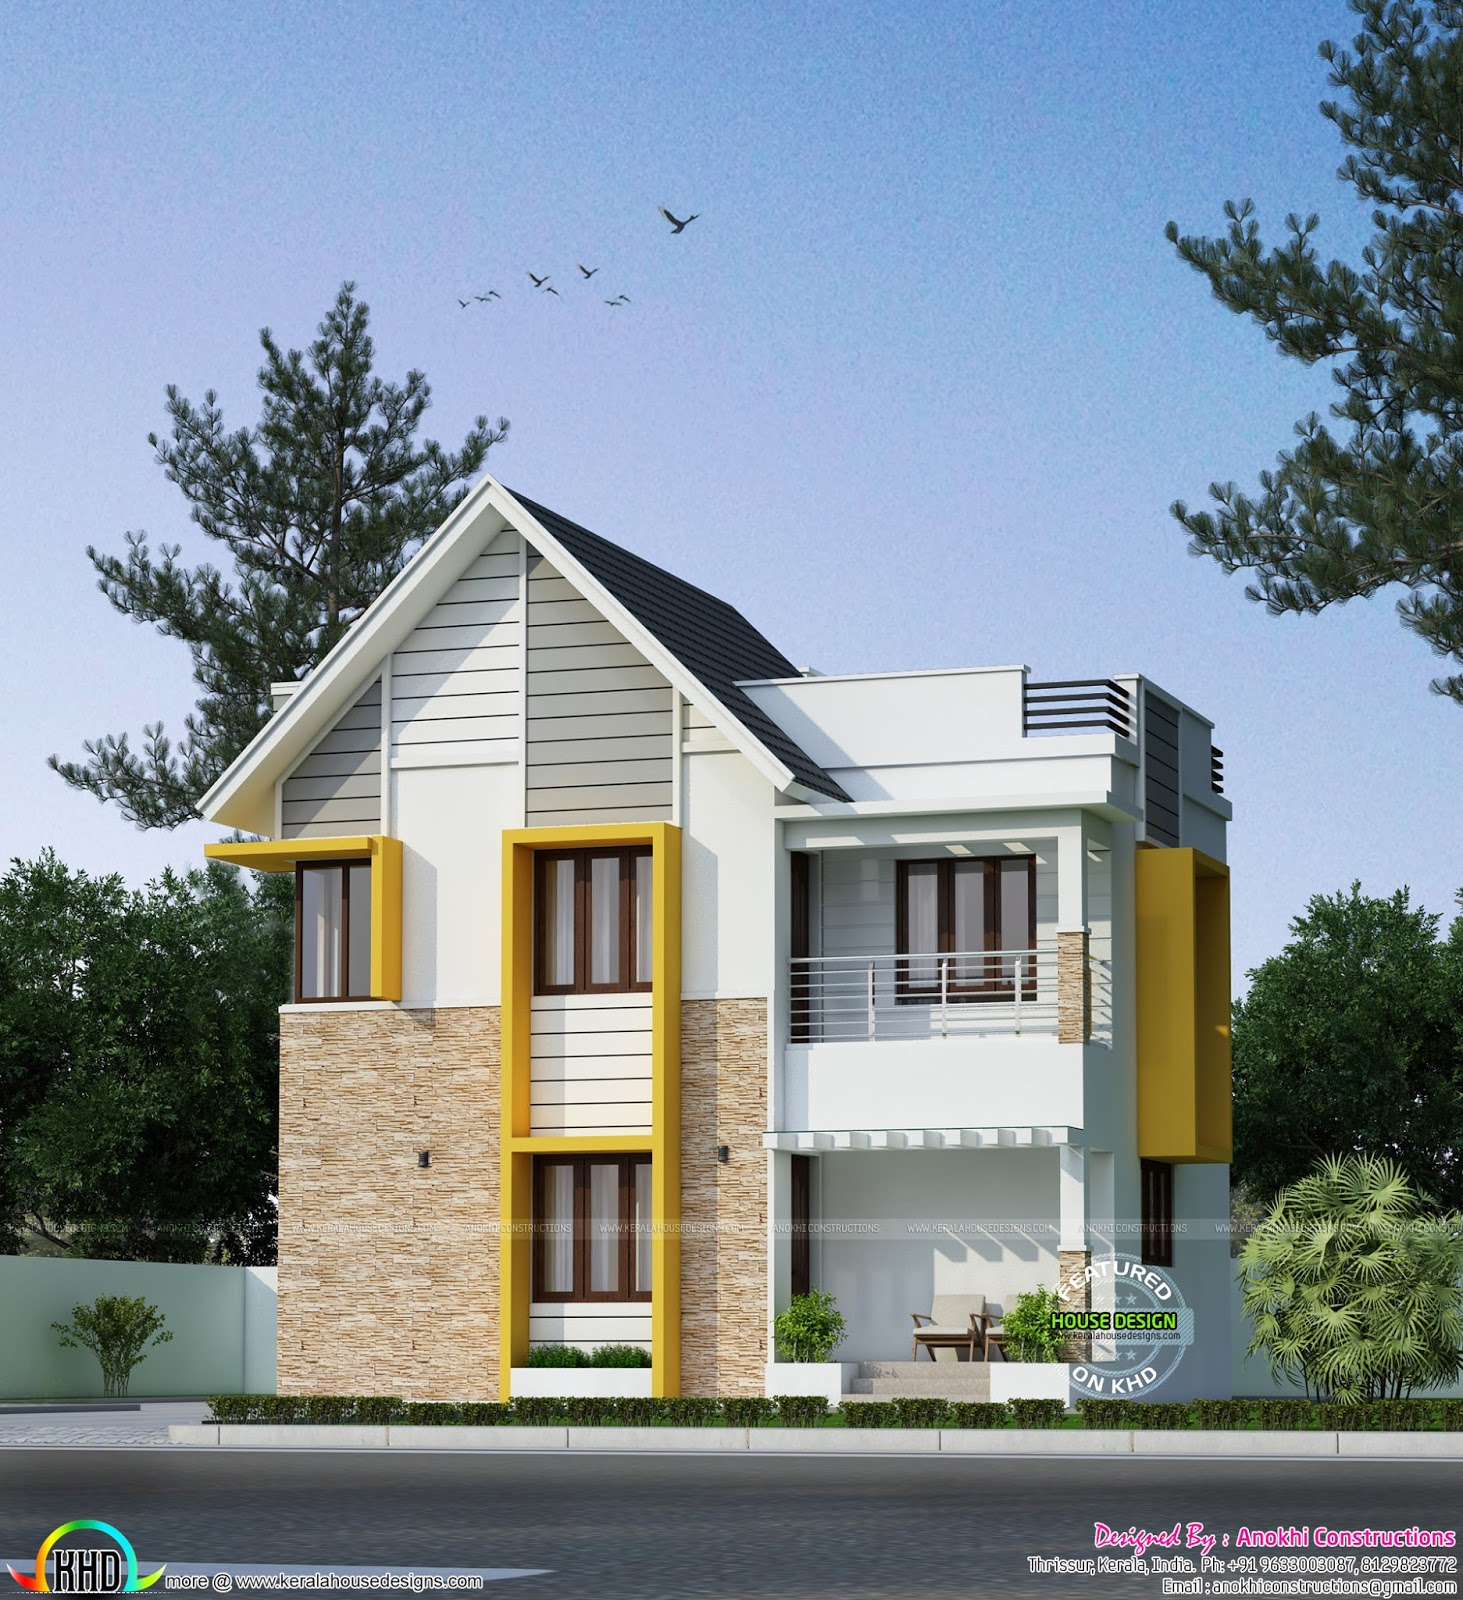 21 lakh cost estimated space saving home design kerala for Space saver home designs